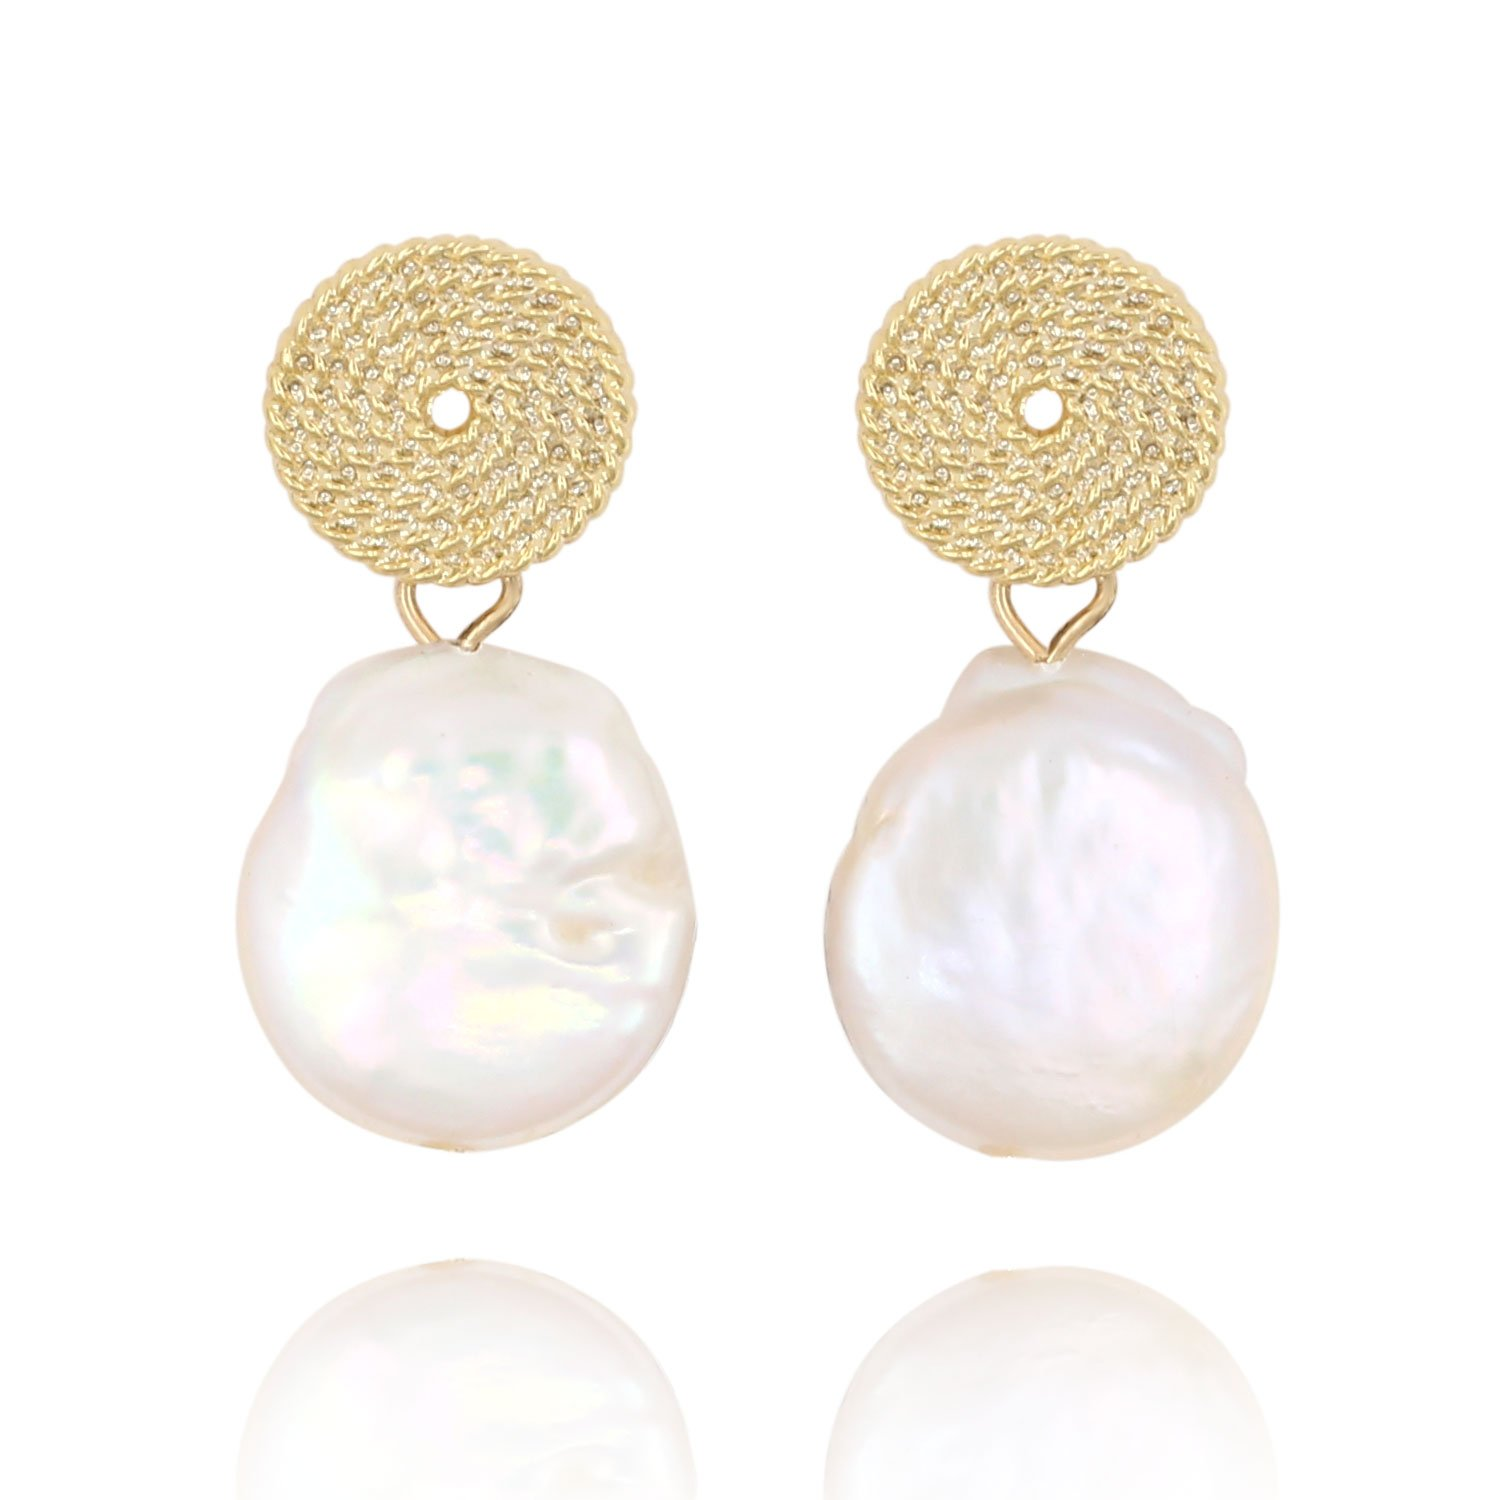 Baroque Pearl Stud Earrings-14K Gold Tone Hammered Disc Drop Statement Women Earring Gifts